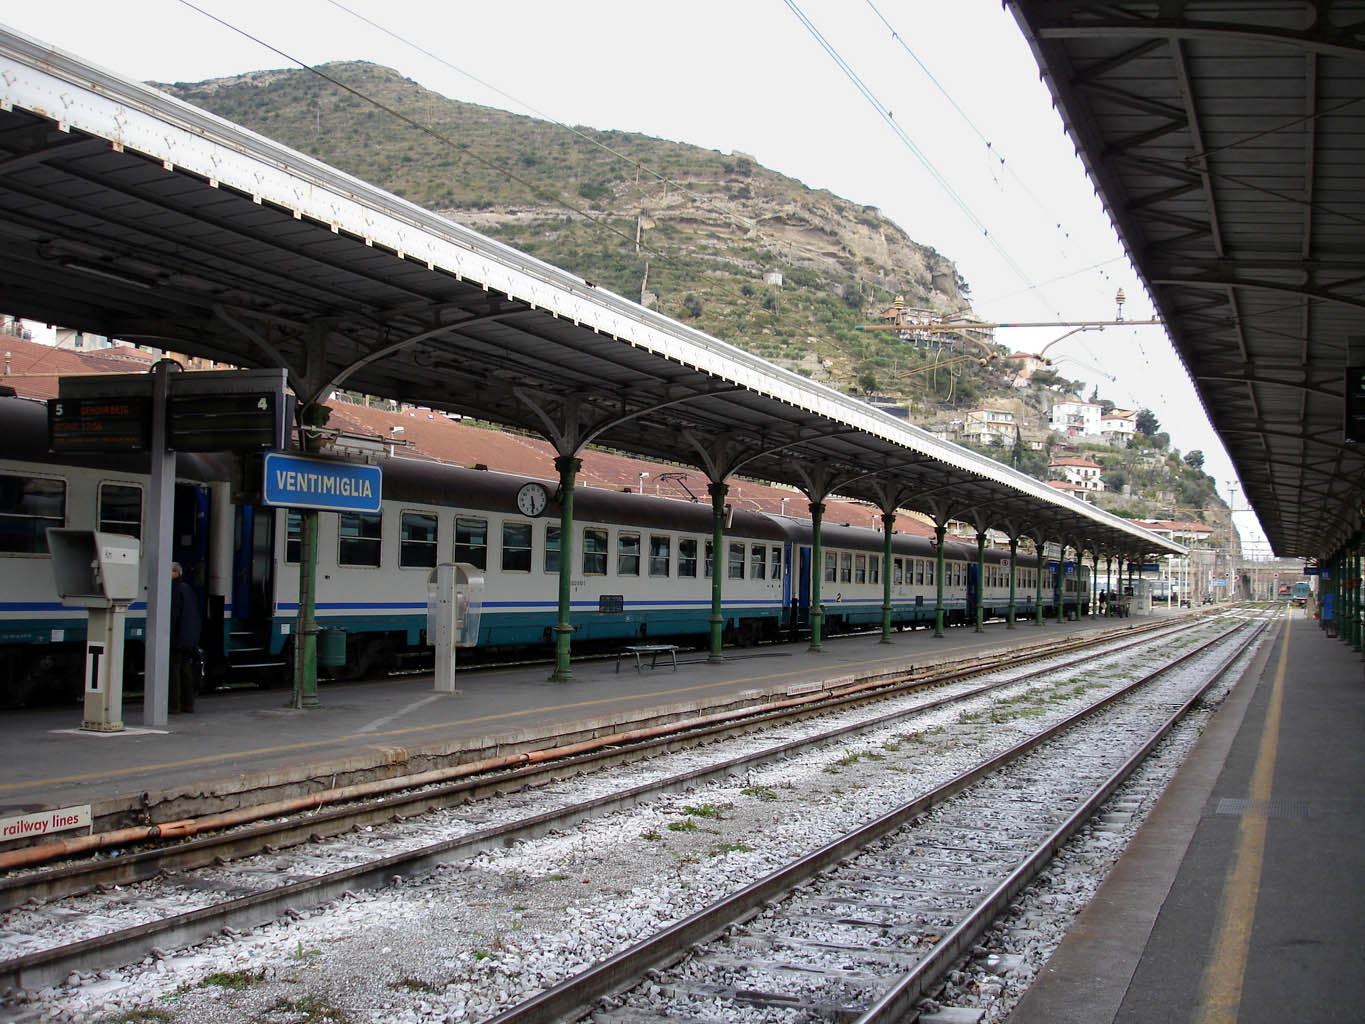 ventimiglia railway station wikipedia. Black Bedroom Furniture Sets. Home Design Ideas